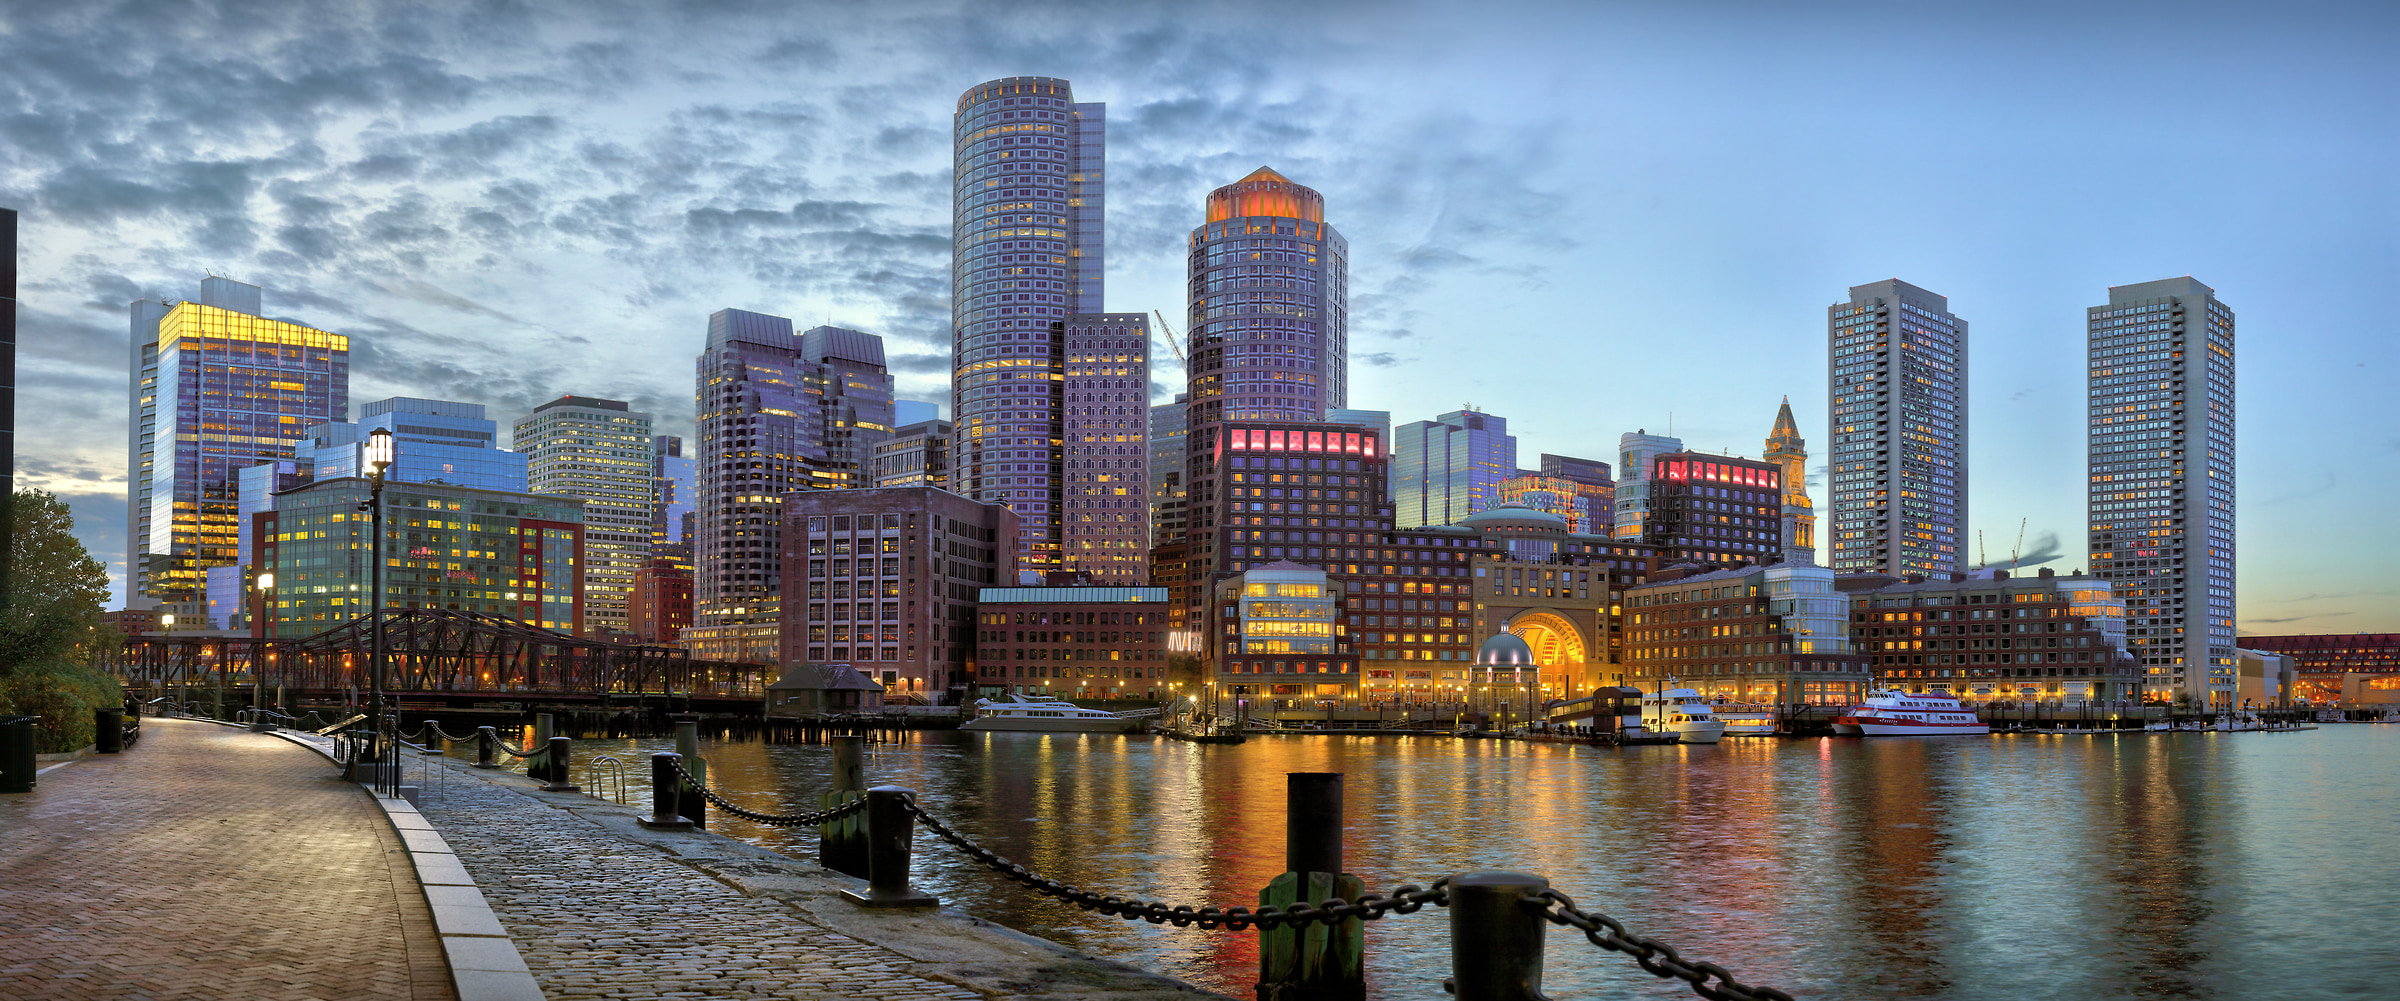 623 megapixels! A very high resolution, large-format VAST photo print of the Boston skyline; photograph created by Phil Crawshay in Fan Pier Park, Boston, Massachusetts